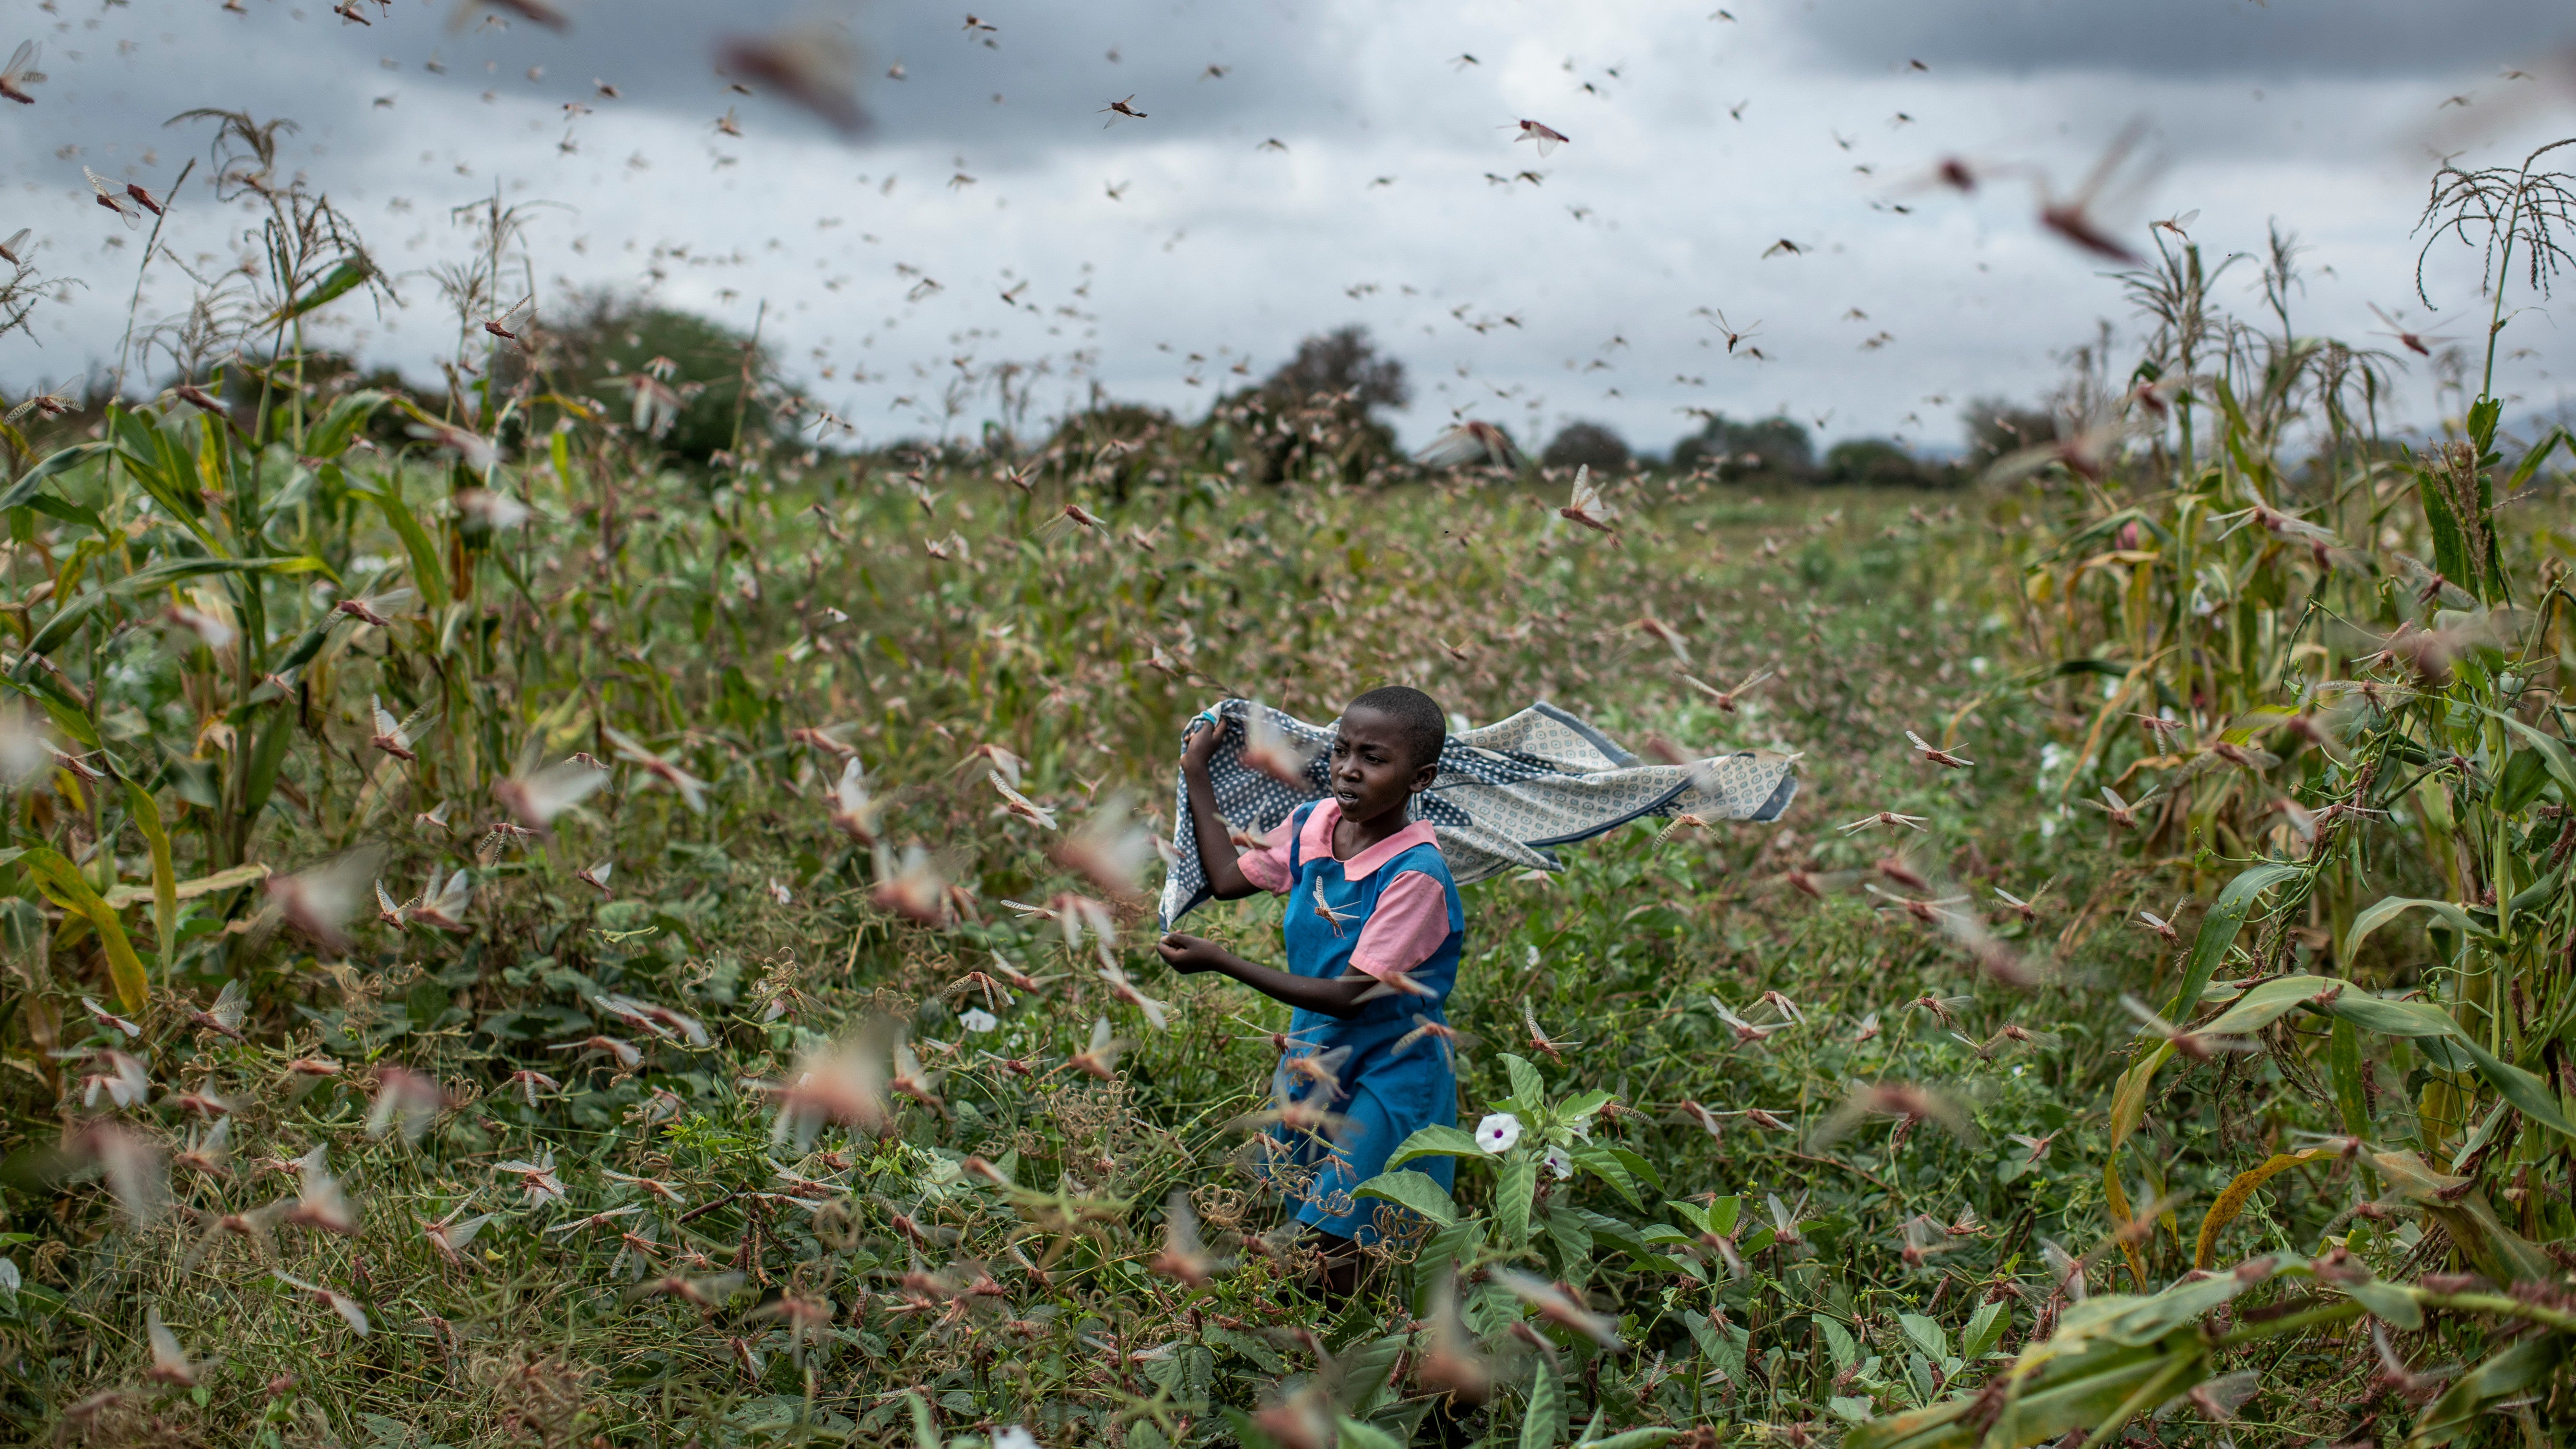 The Climate Crisis May Have Helped Spawn Massive Locust Swarms In East Africa